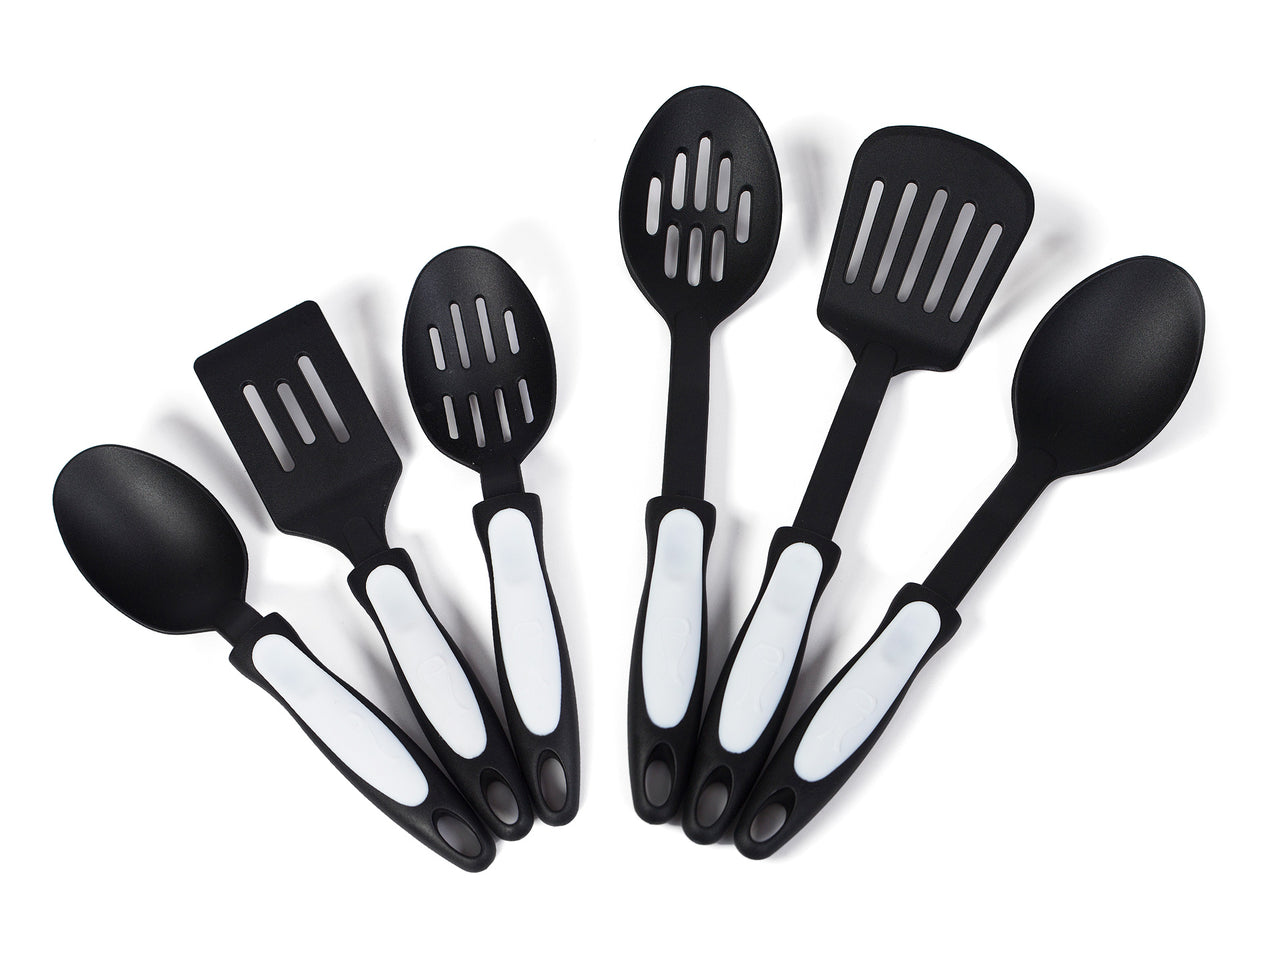 6-Piece Nylon Kitchen Tool Set